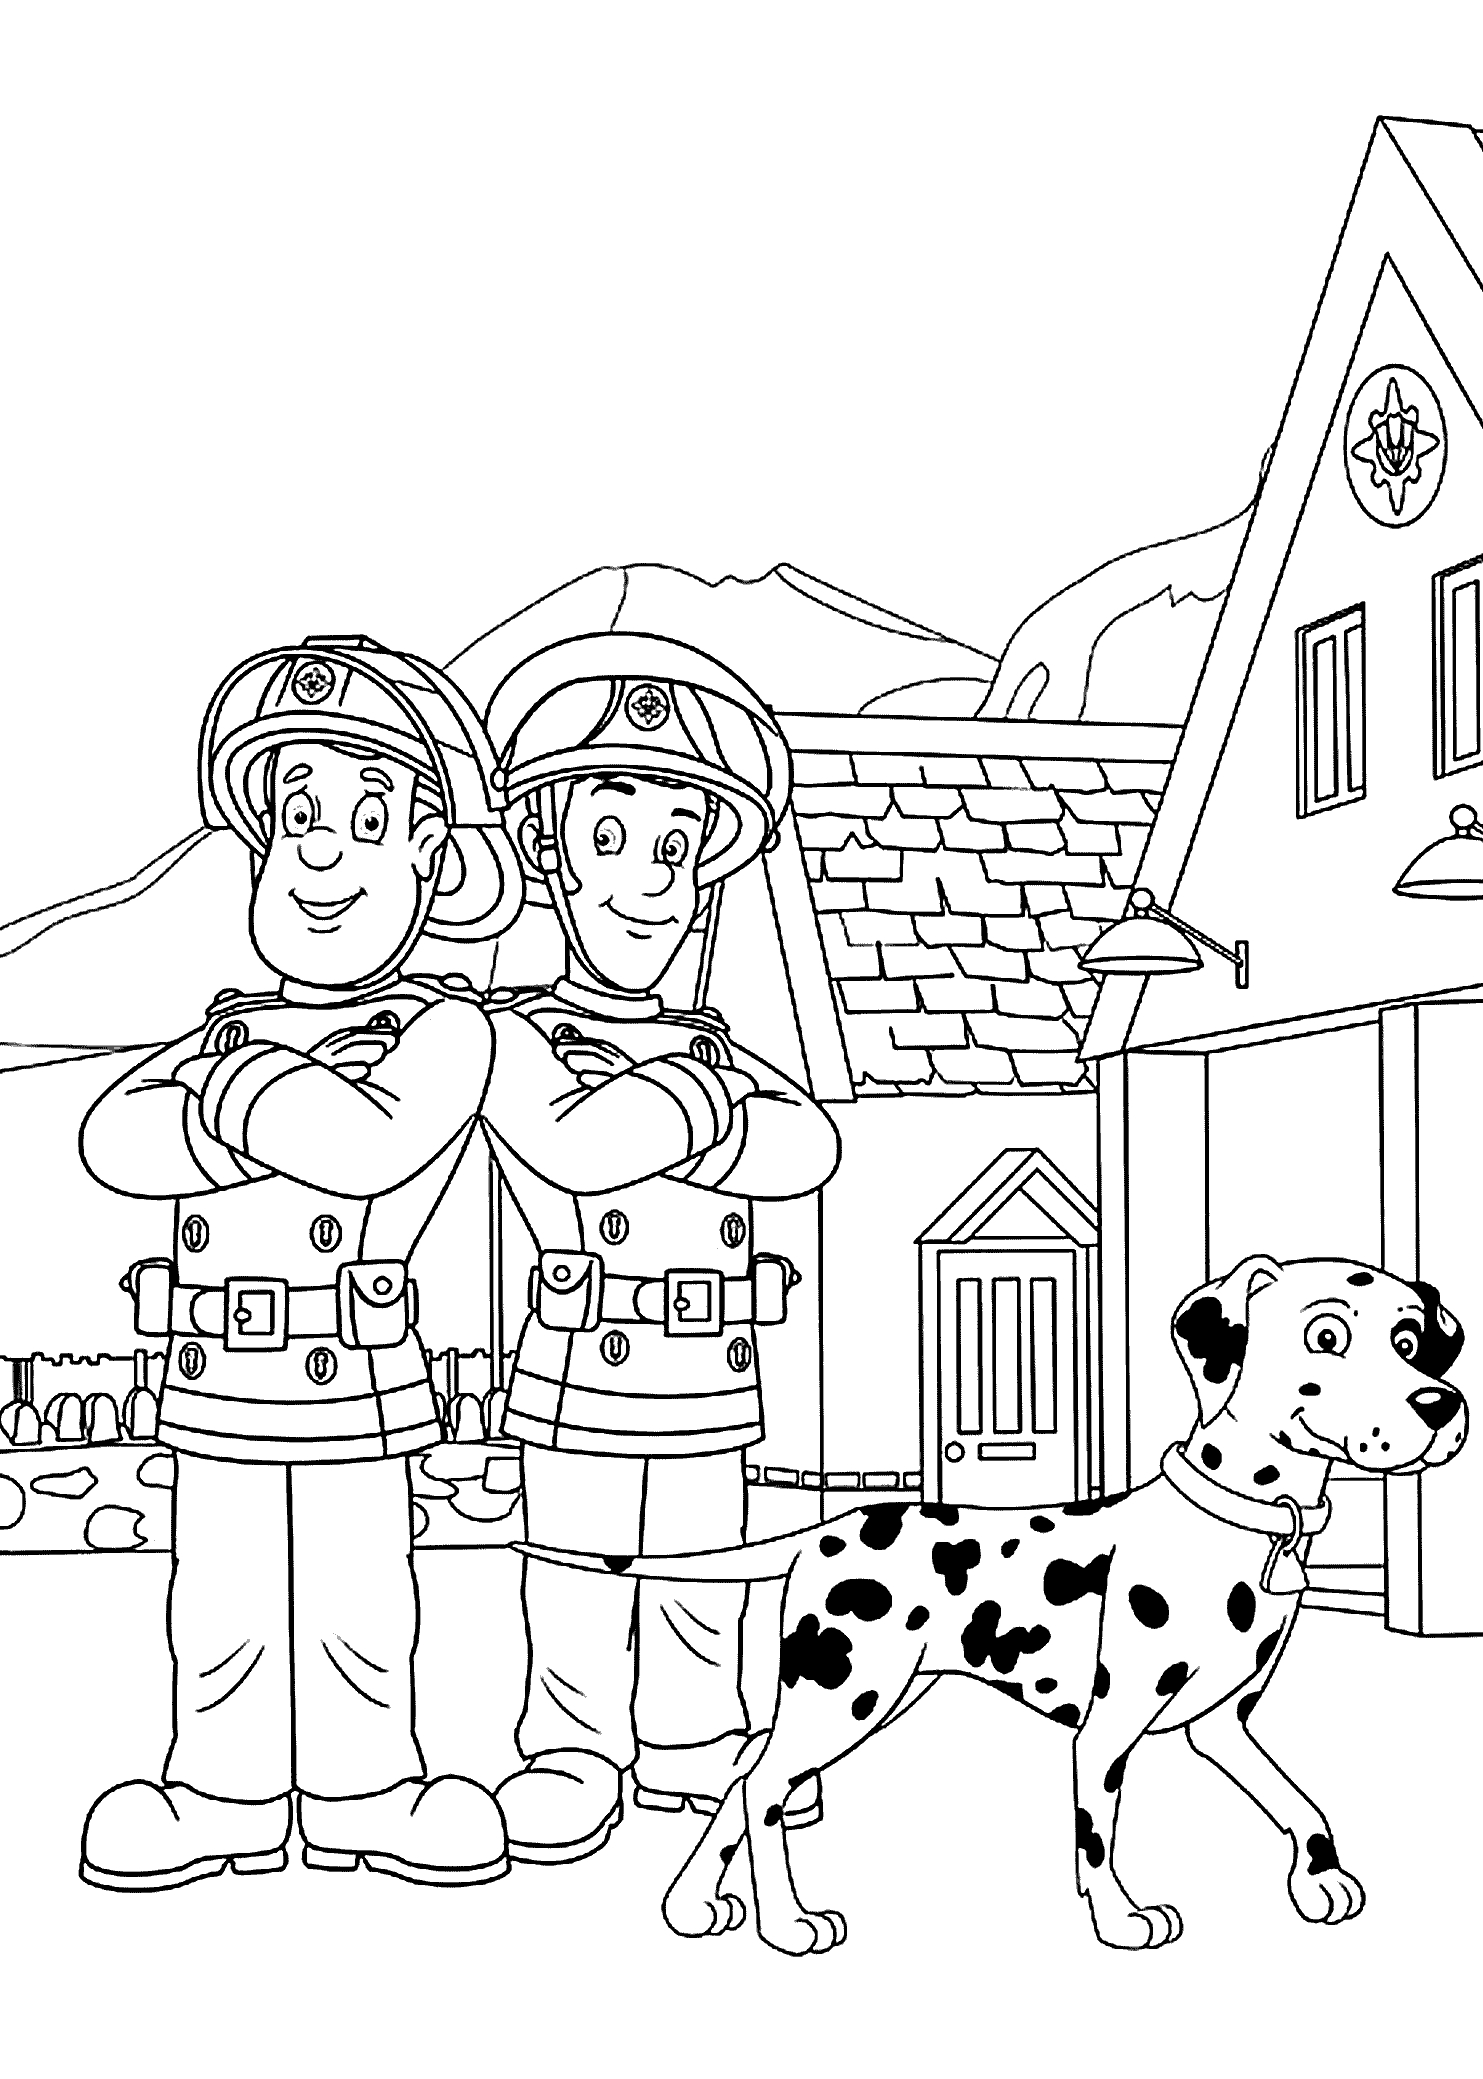 fireman sam coloring pictures fireman sam coloring pages to download and print for free sam fireman coloring pictures